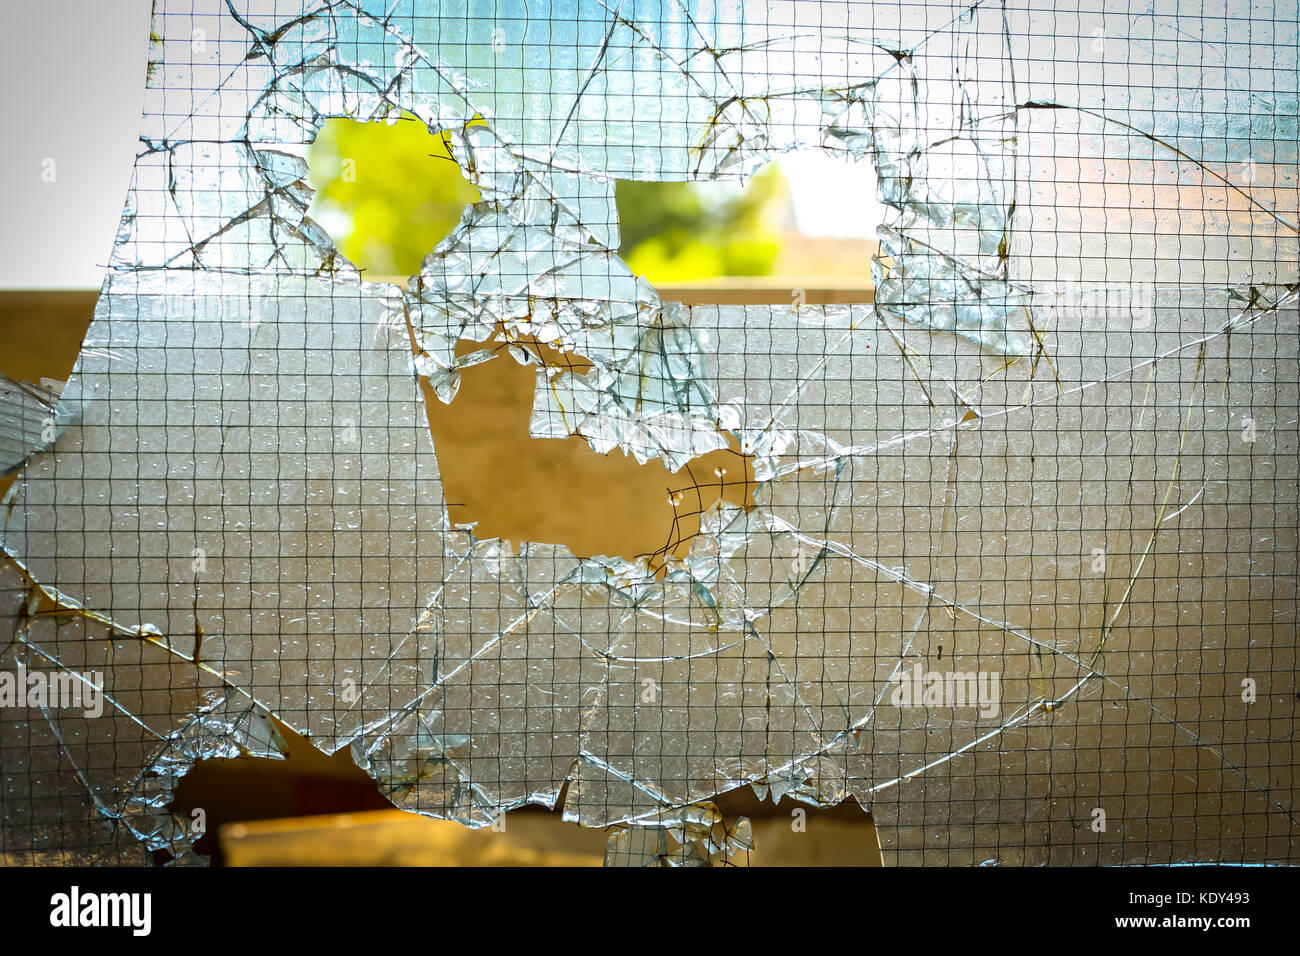 Broken Door Glass Stockfotos & Broken Door Glass Bilder - Alamy